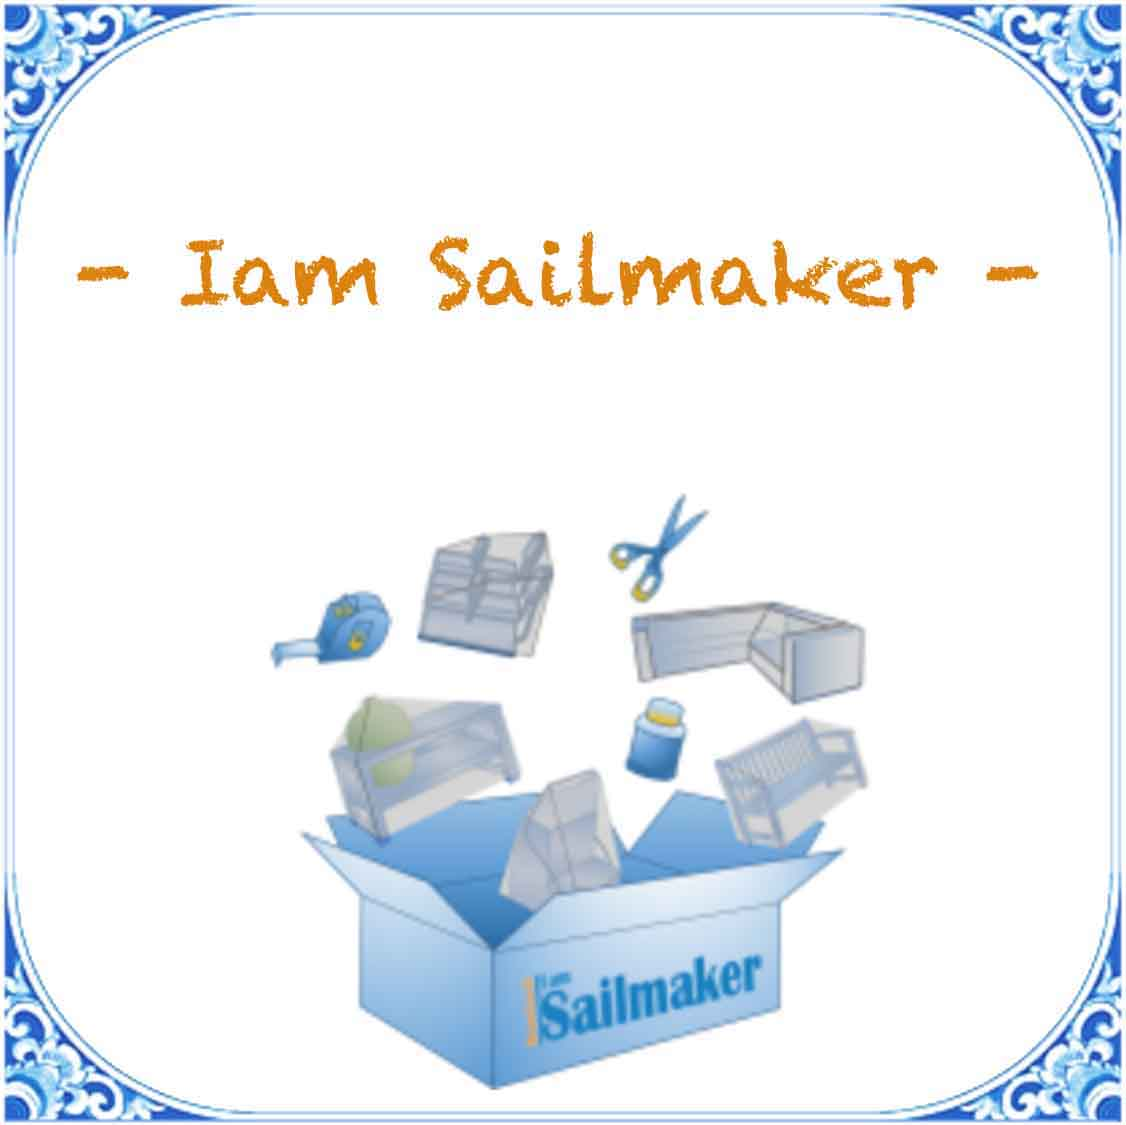 I am sailmaker manual